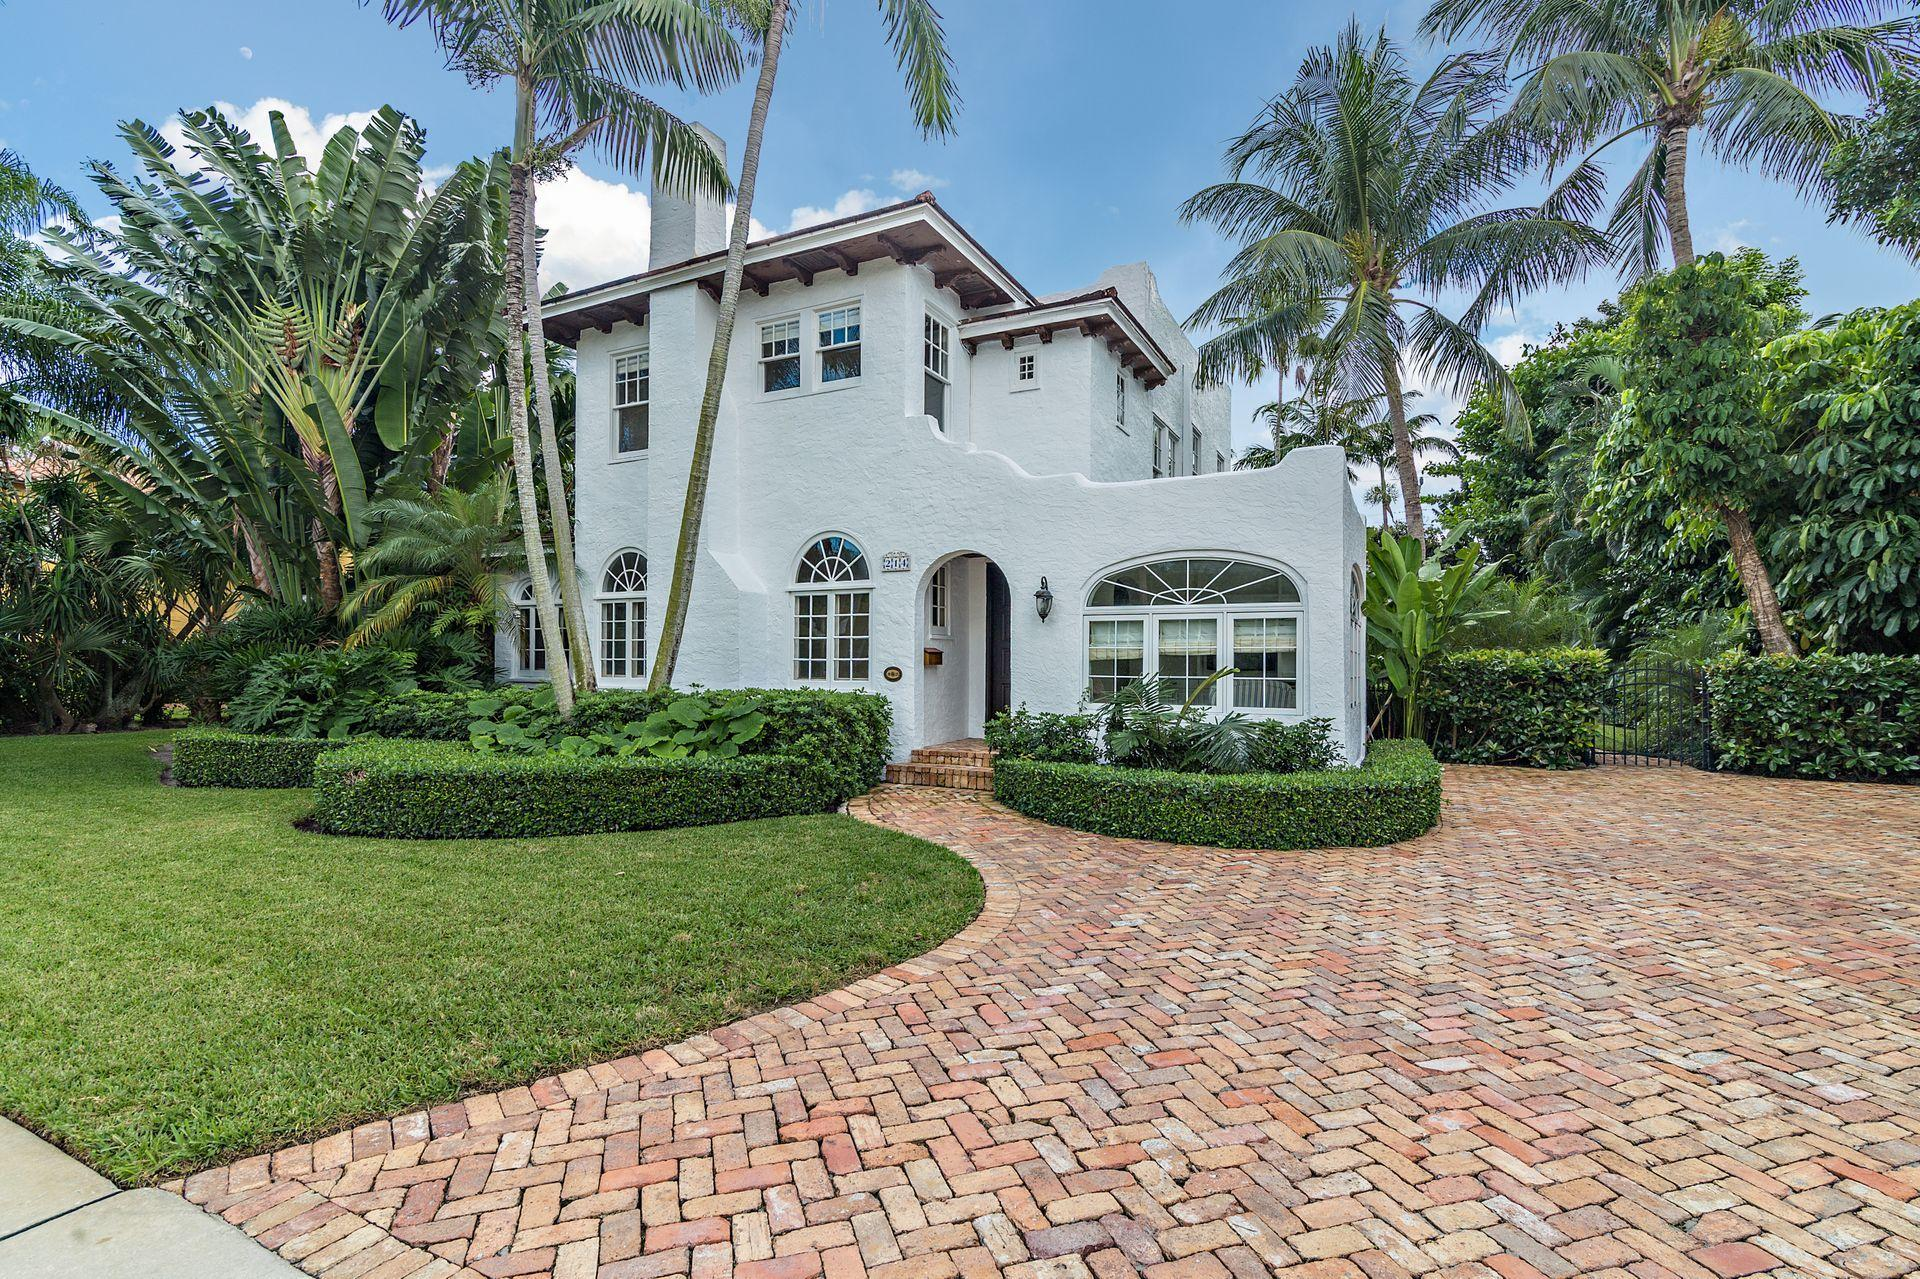 214 Monroe Drive, West Palm Beach, Florida 33405, 4 Bedrooms Bedrooms, ,3.1 BathroomsBathrooms,Single Family,For Rent,Monroe,RX-10578381